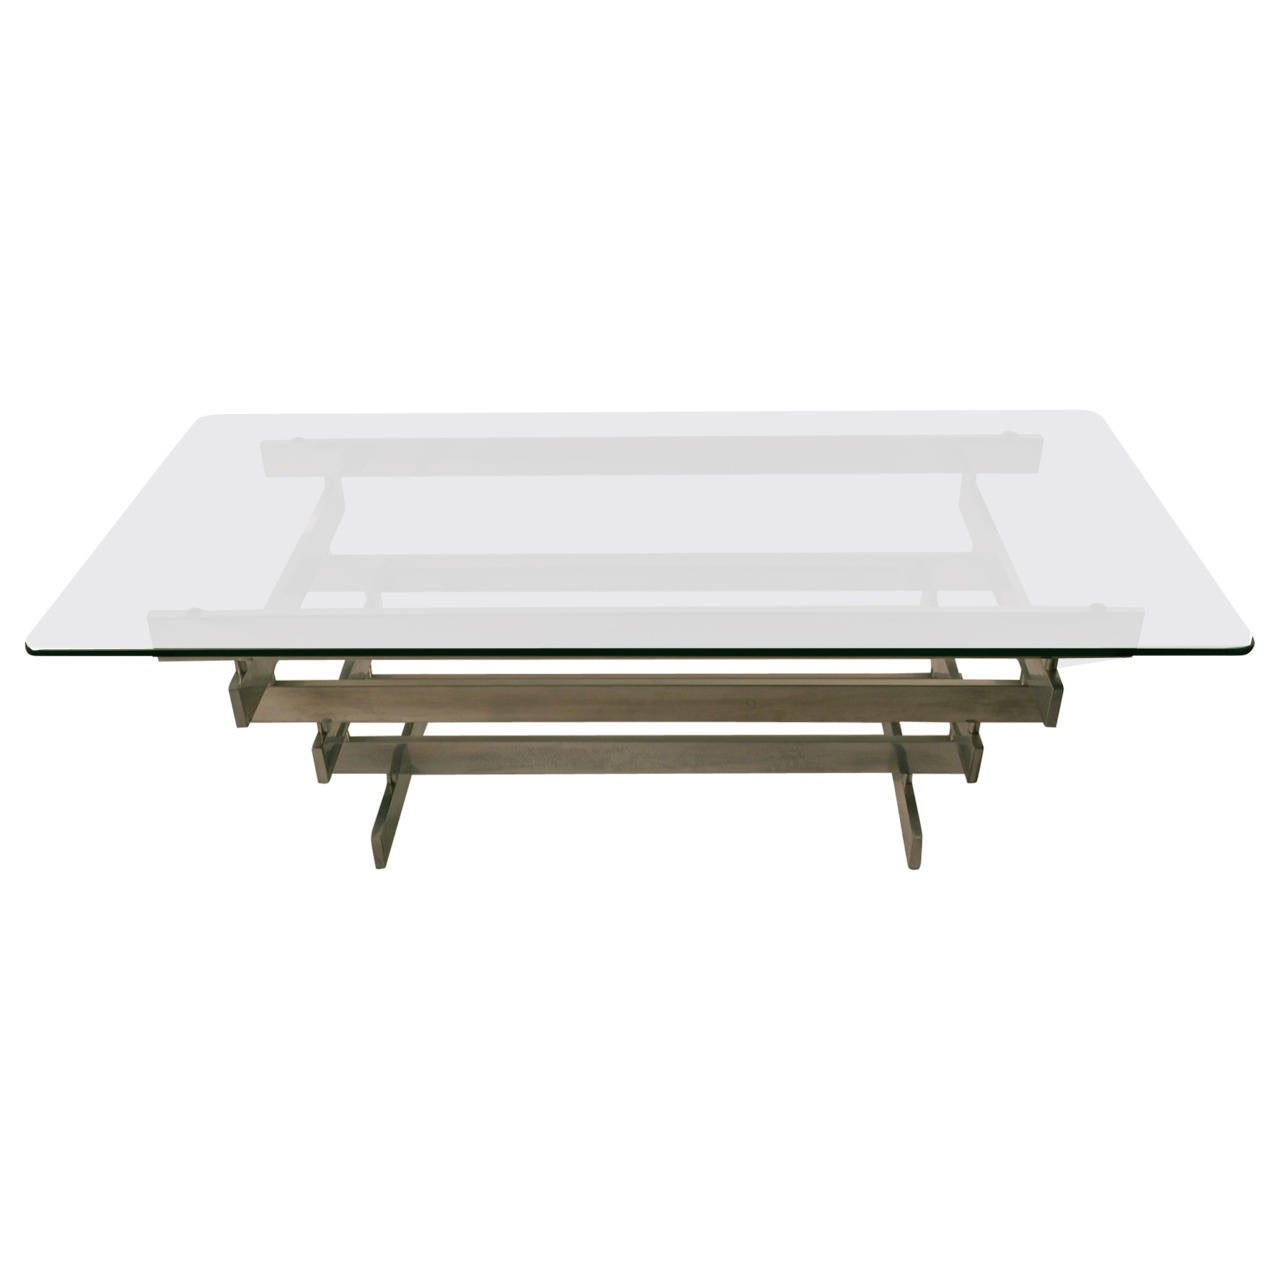 Stacked aluminum block base glass top coffee table for sale at 1stdibs Glass coffee table base